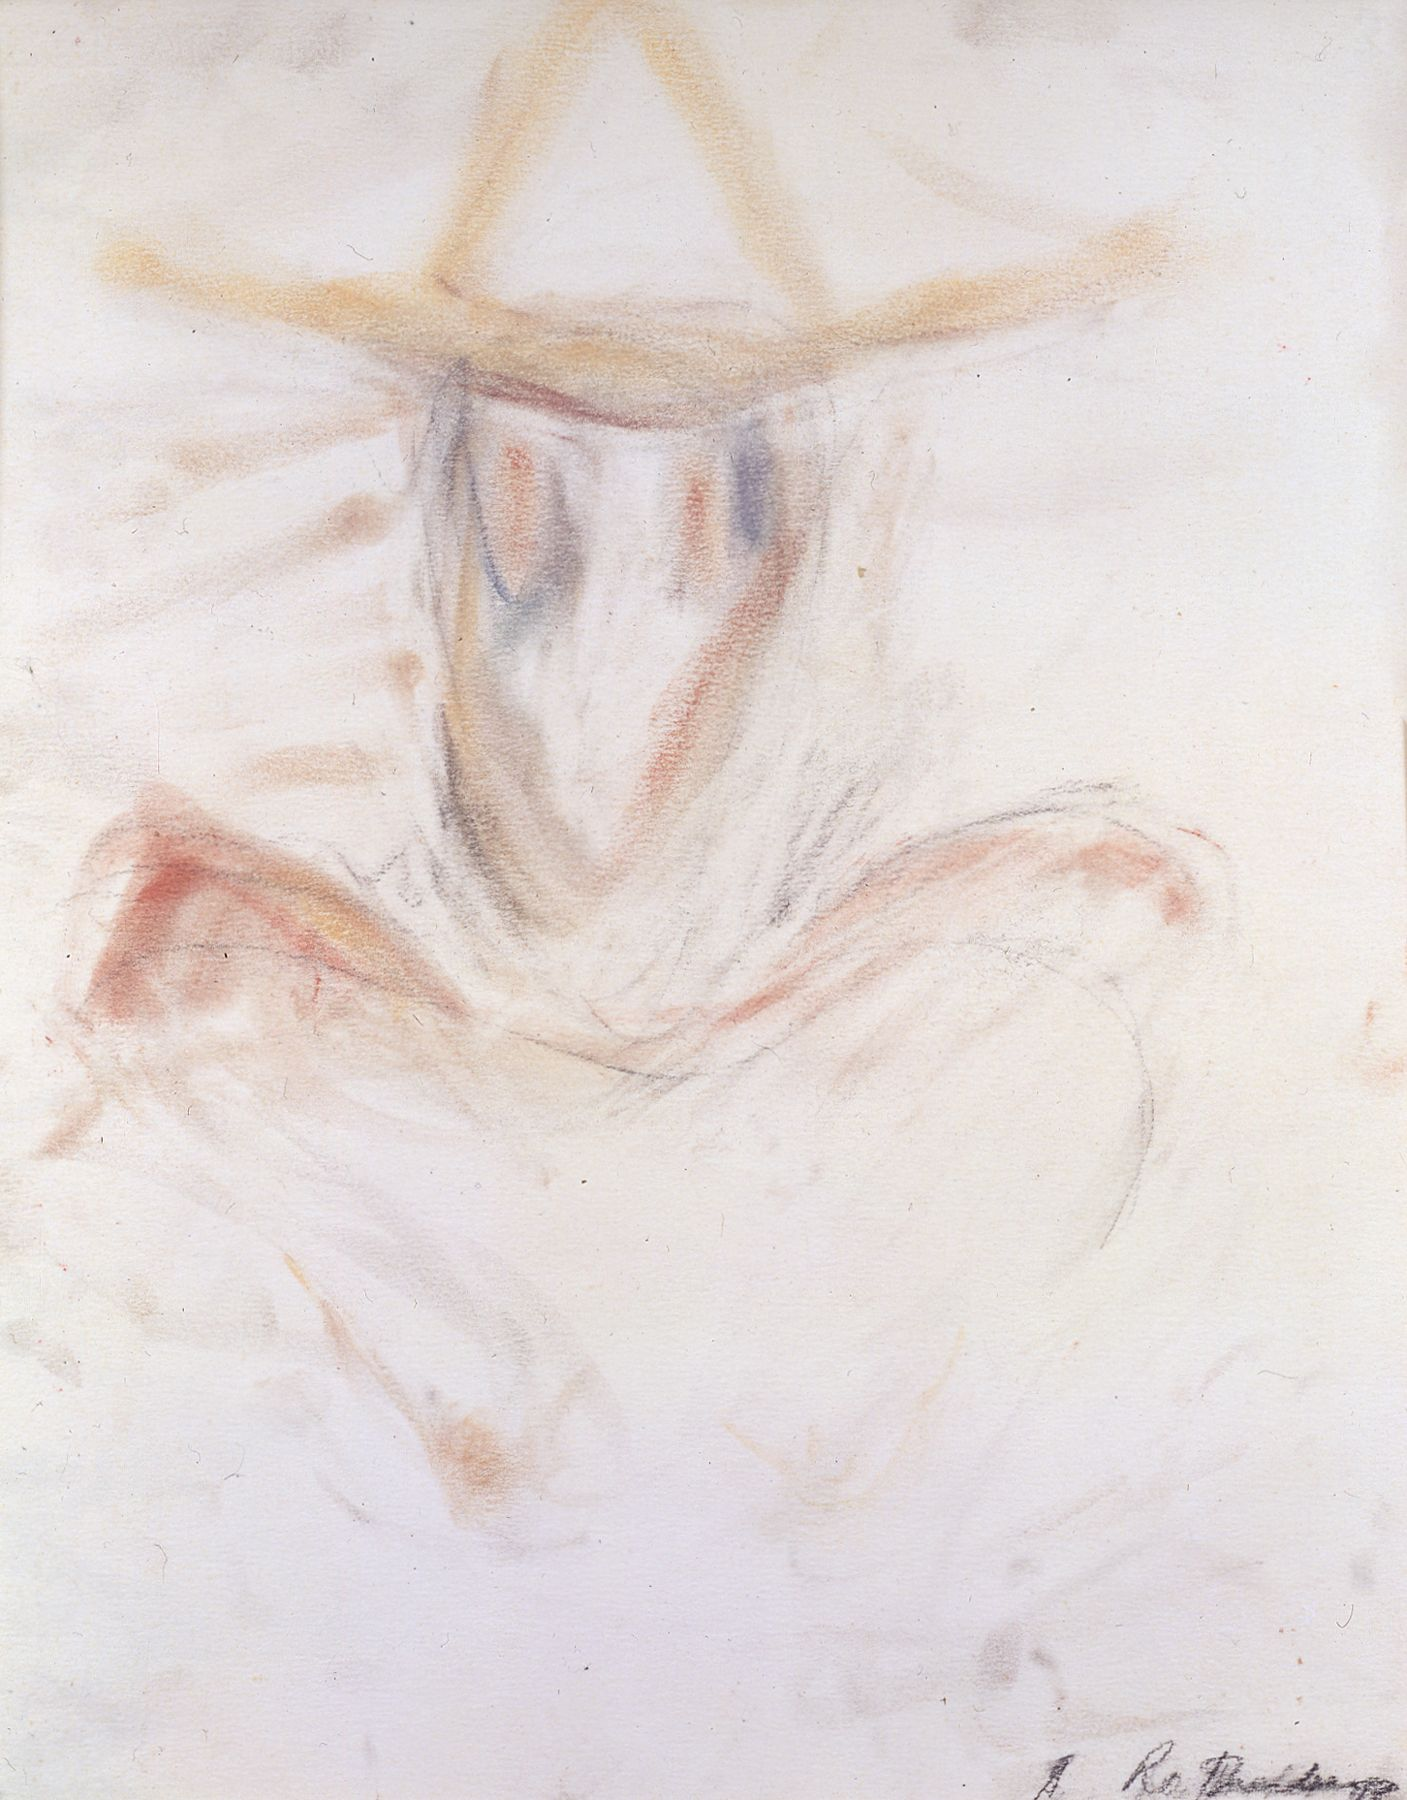 Susan Rothenberg, Self-Portrait, 1983, pastel on paper, 17 1/4 x 13 1/2 inches